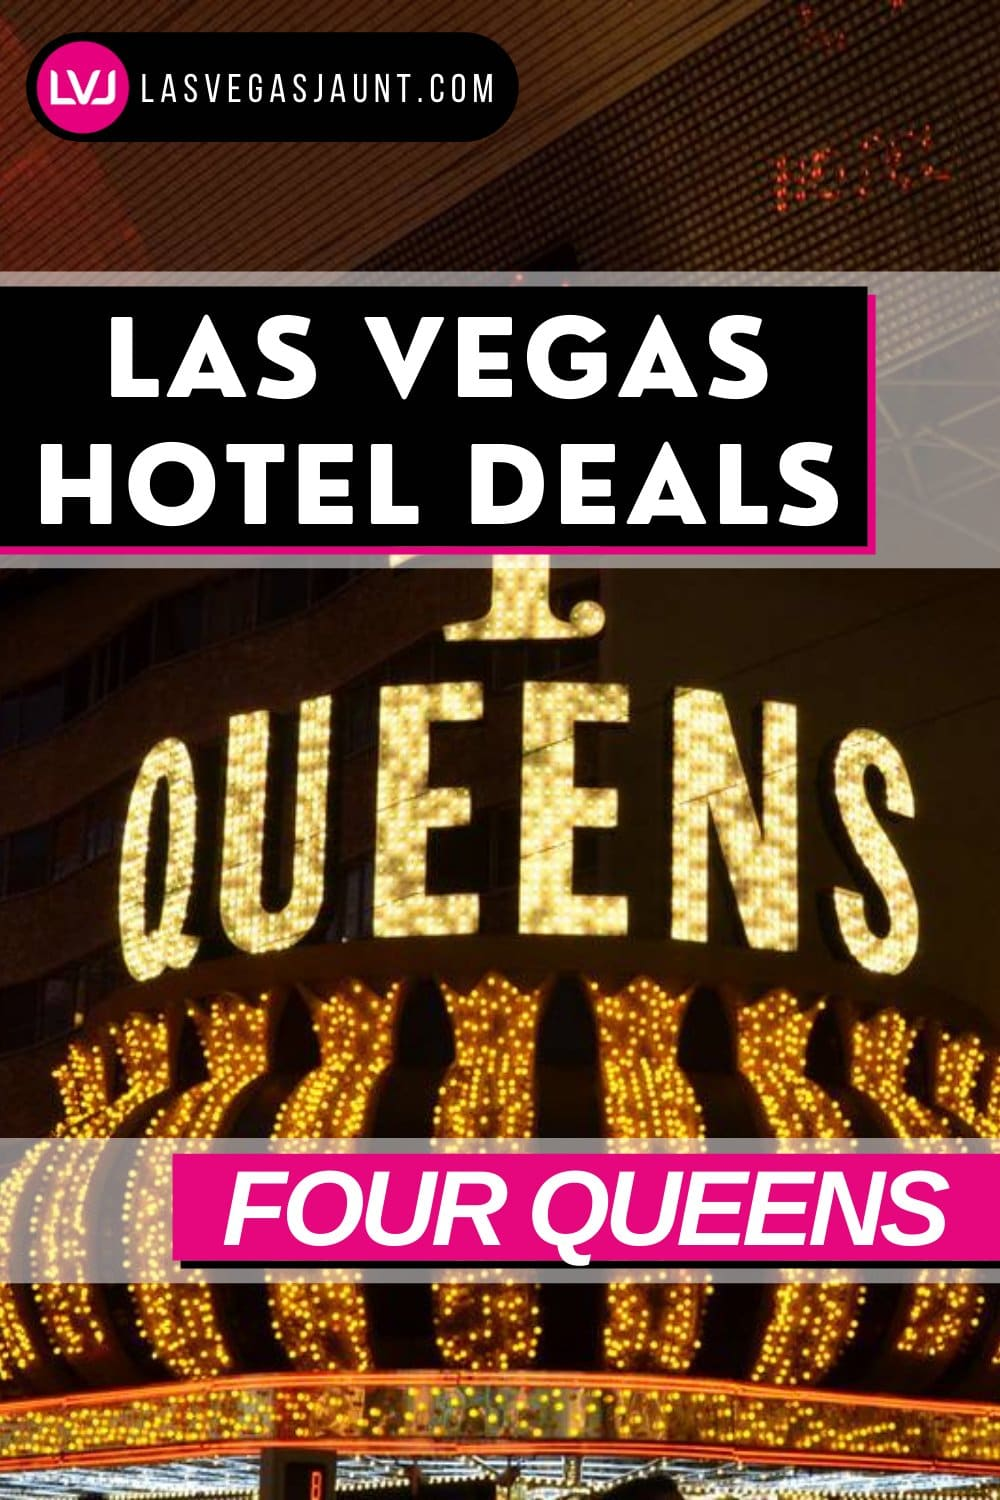 Four Queens Hotel Las Vegas Deals Promo Codes & Discounts